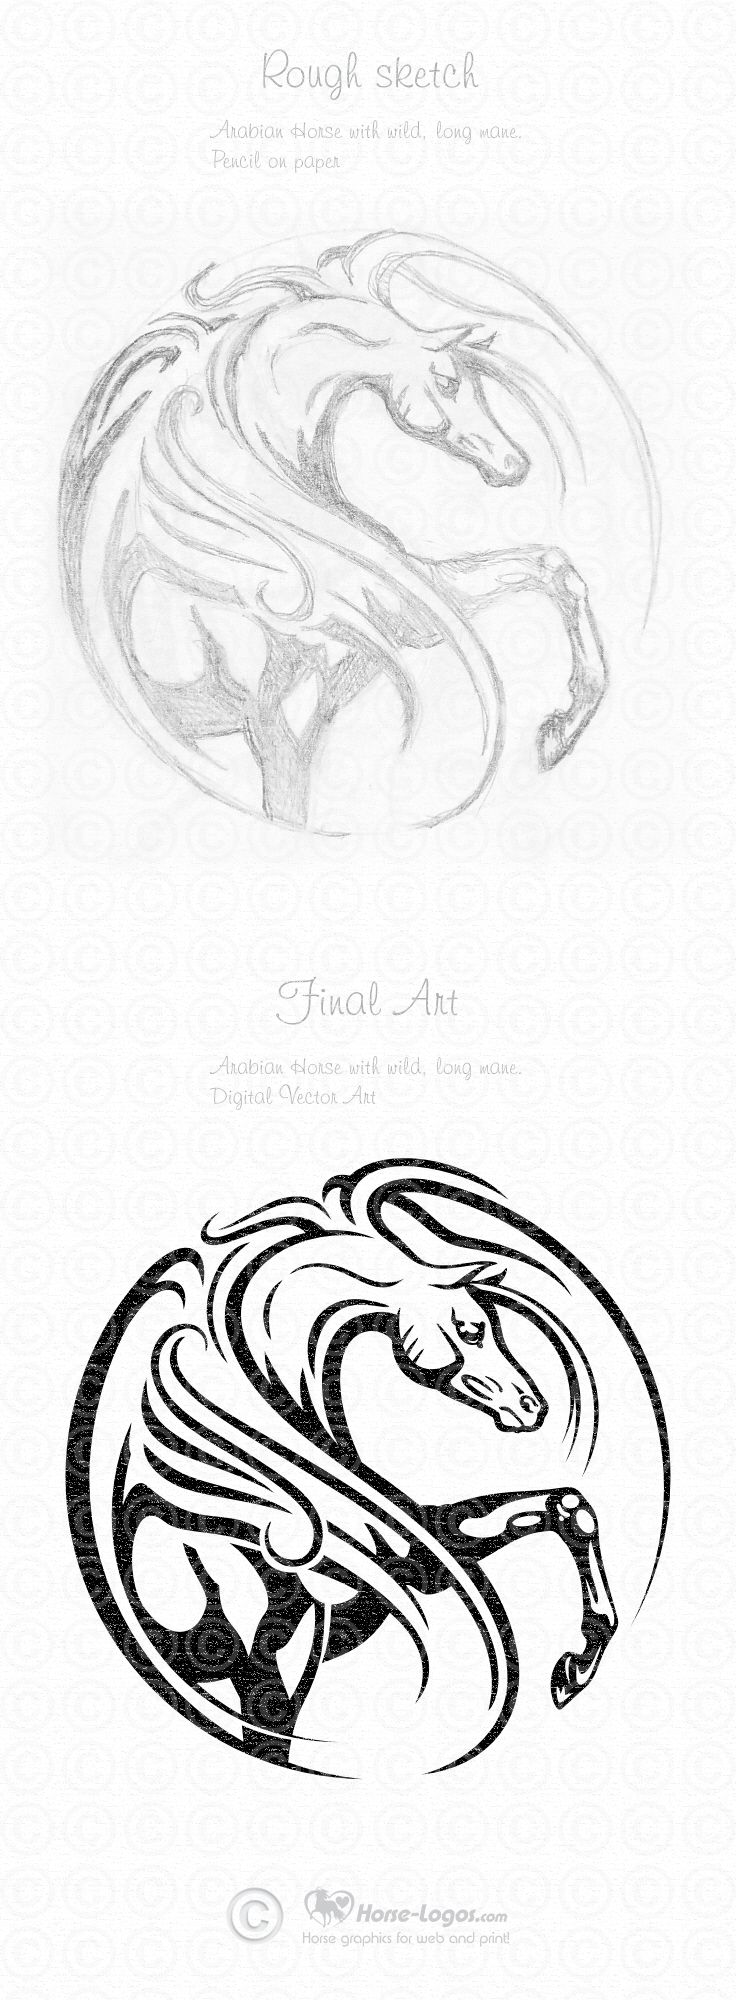 Arabian Horse Graphic Art Design by Joni Solis of Horse-Logos.com   Final art will be available soon. #Arabian #art #graphic #design #logo #pencil #vector